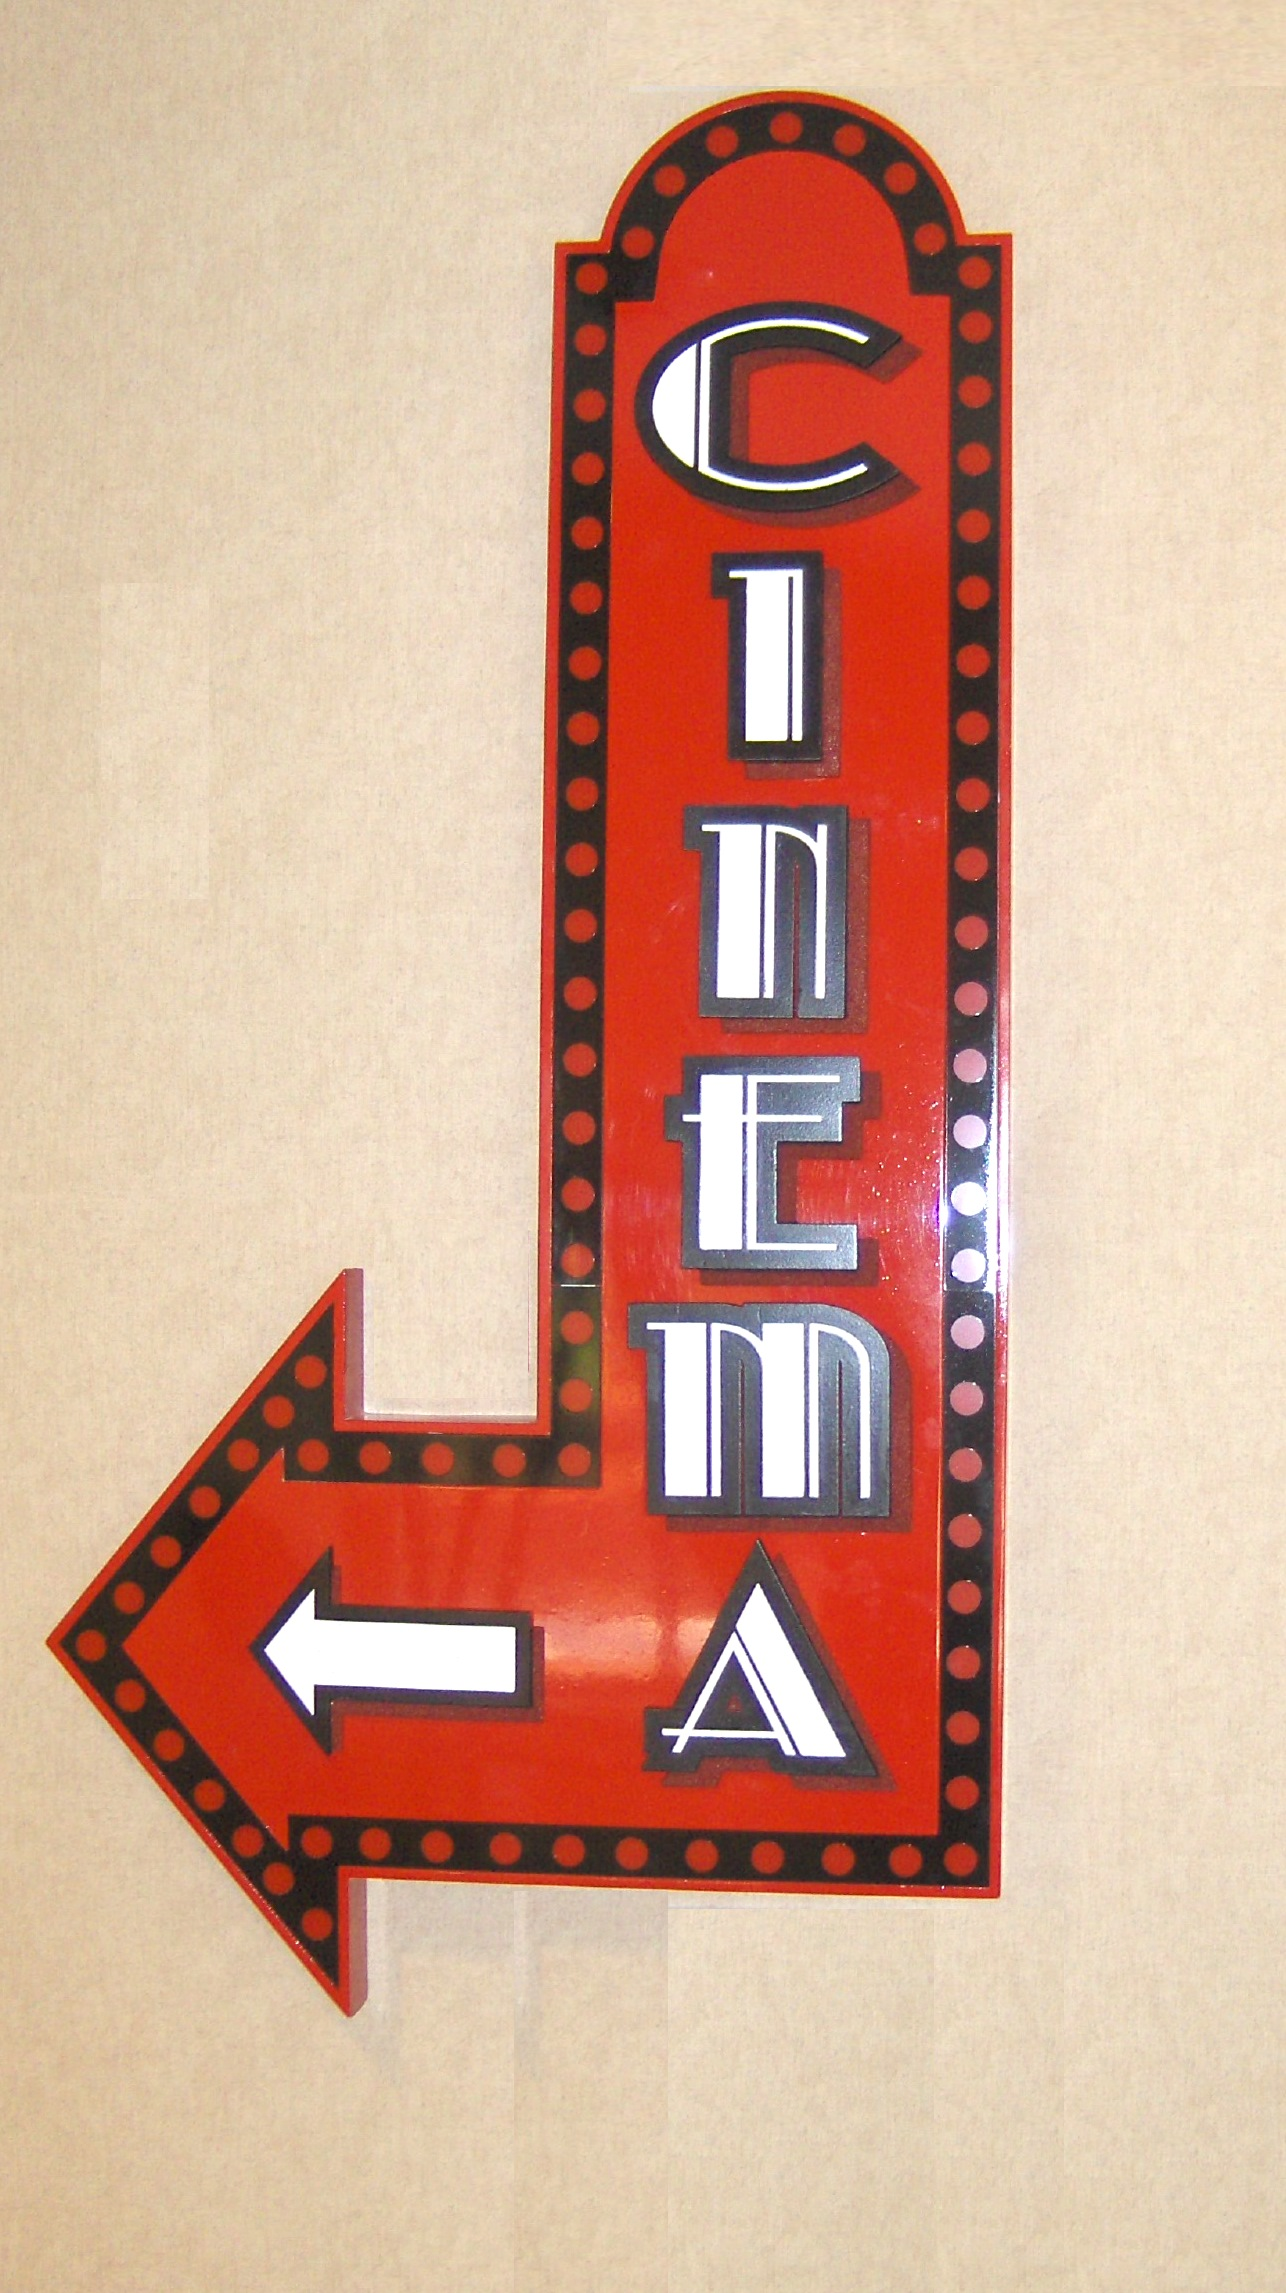 cinema sign with internal leds to light red dots also dimensional letters from classic signs nc